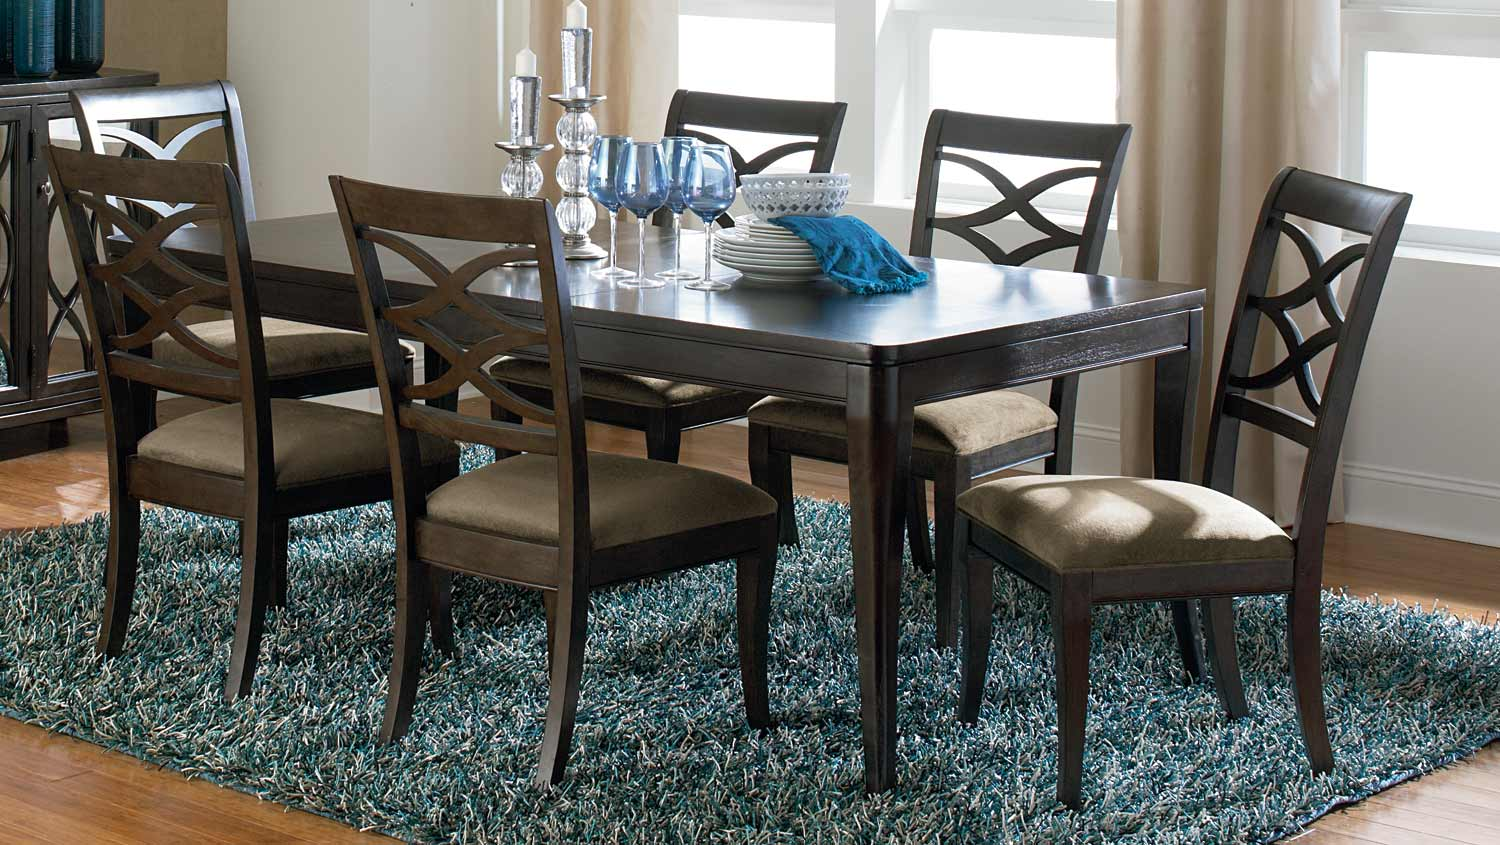 Legacy Classic Westerly Splat Upholstered Dining Set - Anthracite/Smokey Heather Accents